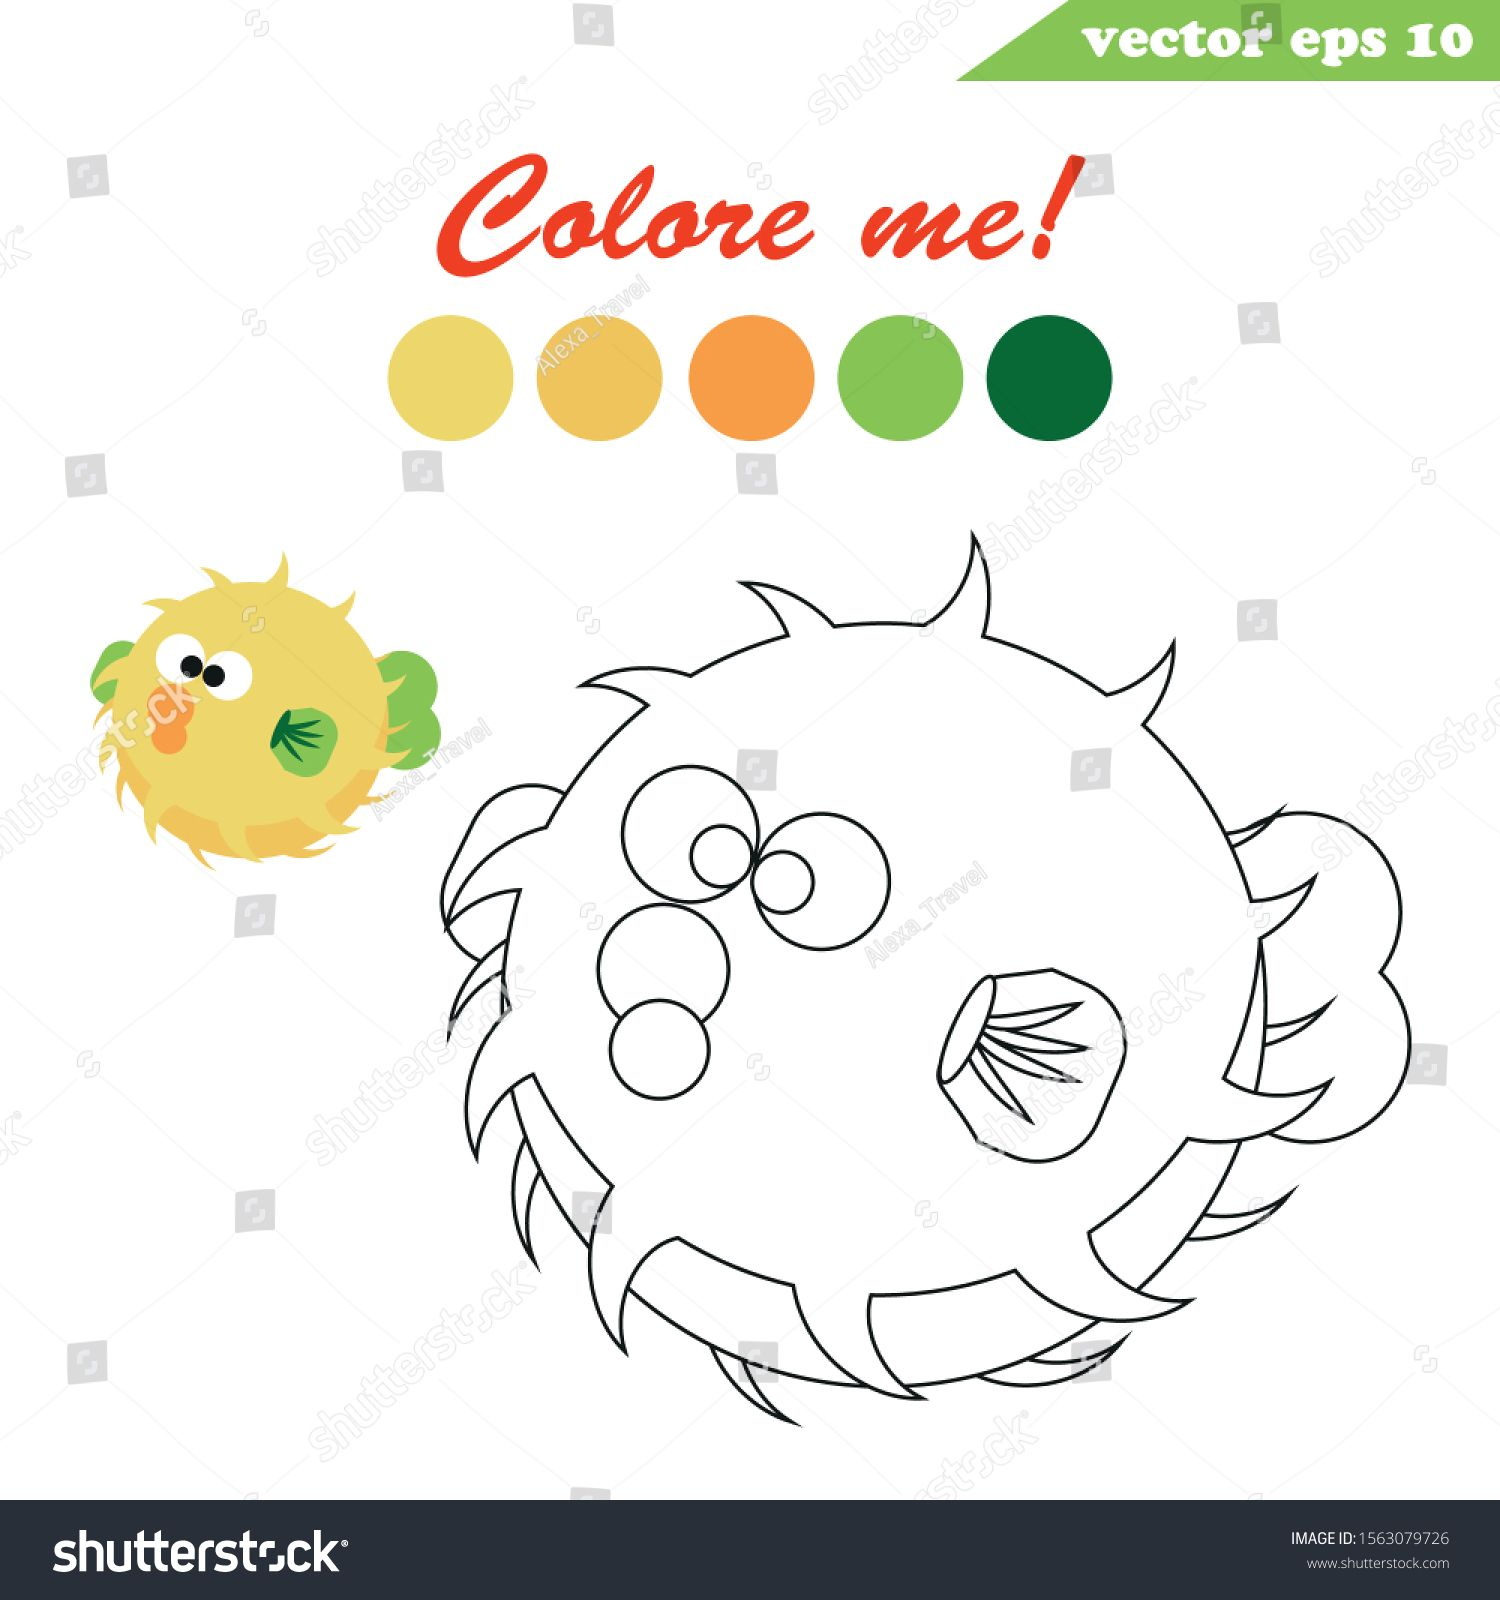 Simple And Easy Educational Game For Children Coloring Book Page Underwater Creatures Pufferfish Educational Games For Kids Educational Games Coloring Books